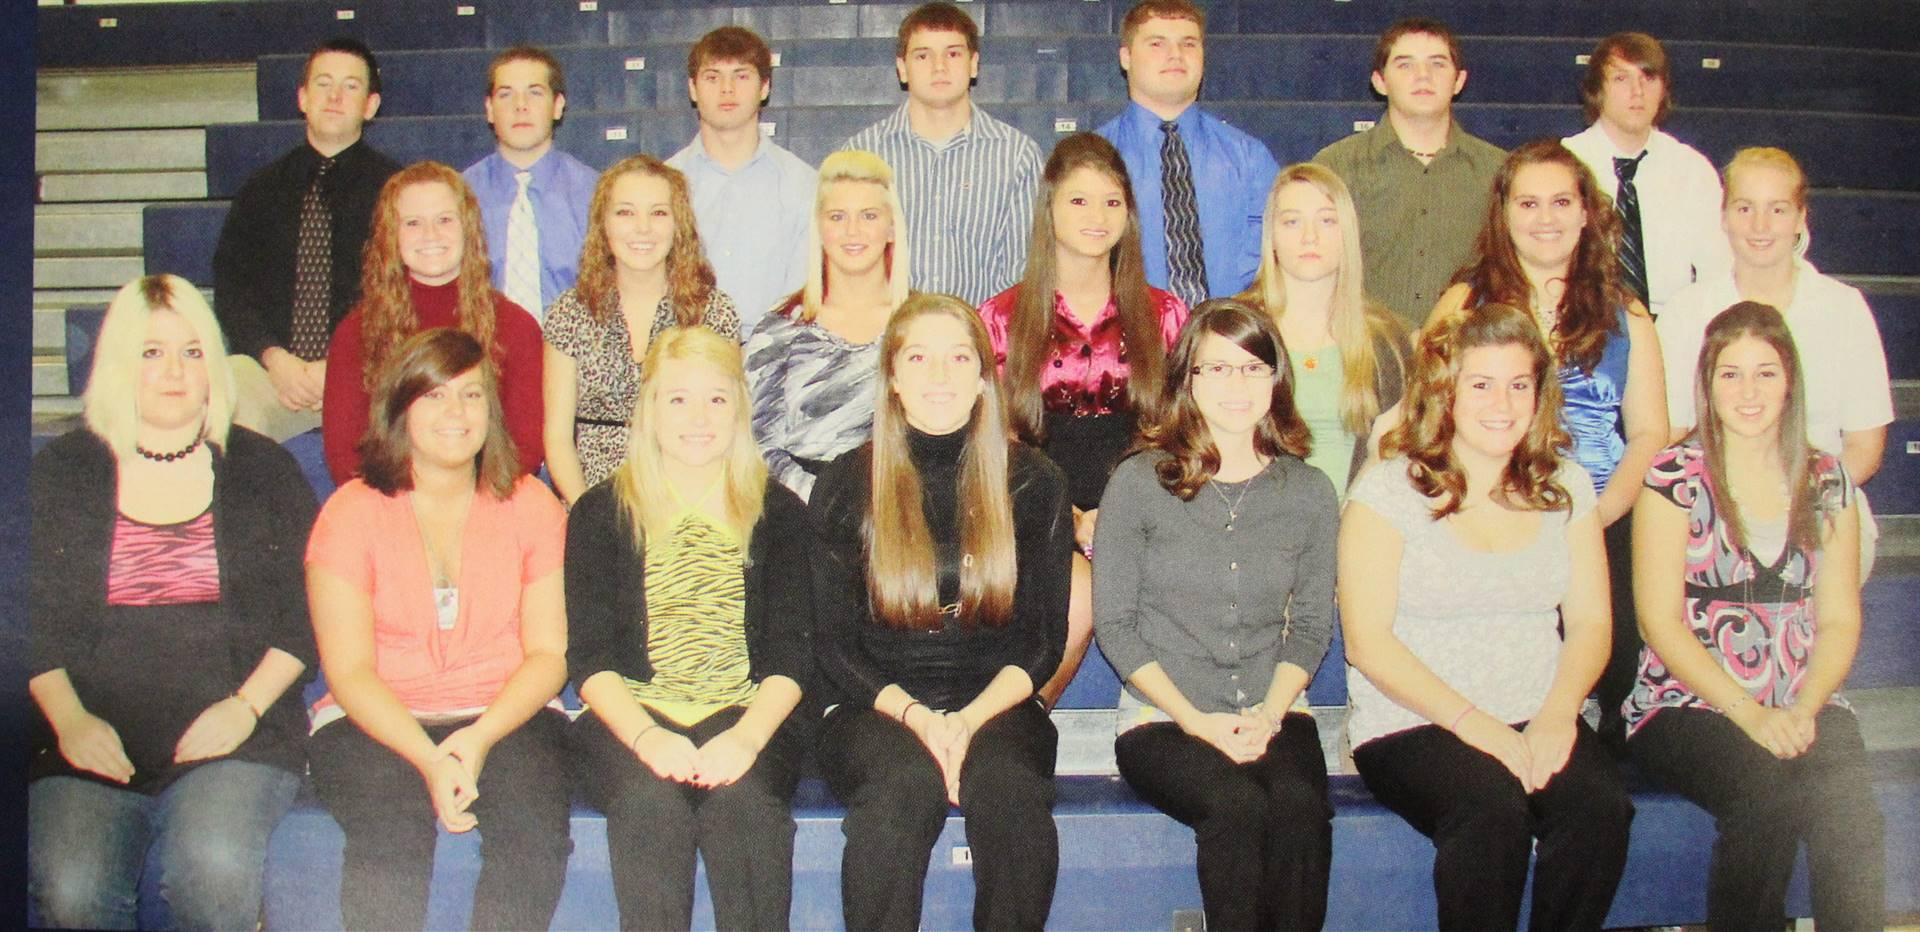 2010 National Honor Society